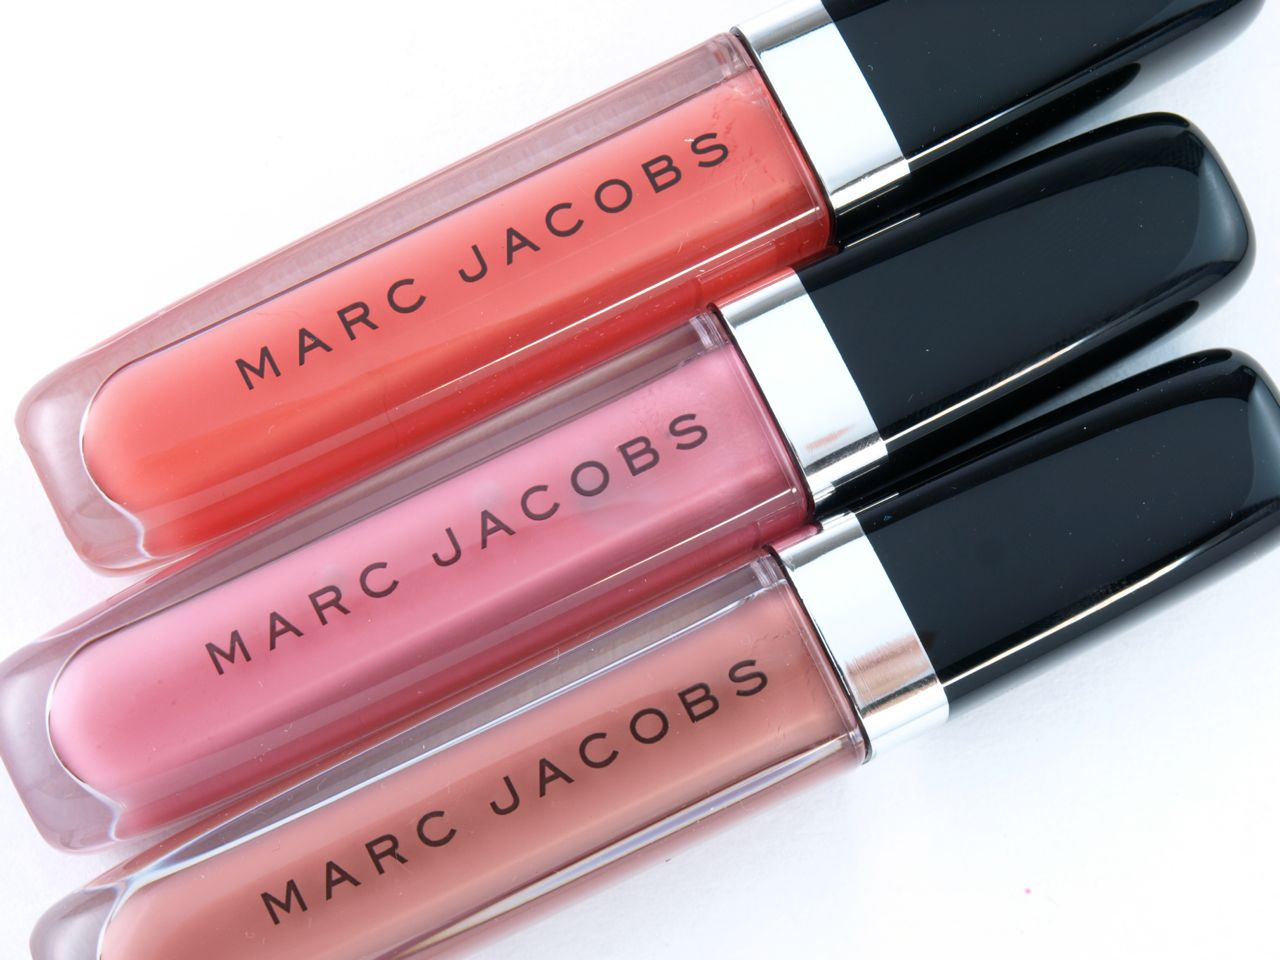 Marc Jacobs Enamored Hi-Shine Lip Lacquer: Review and Swatches